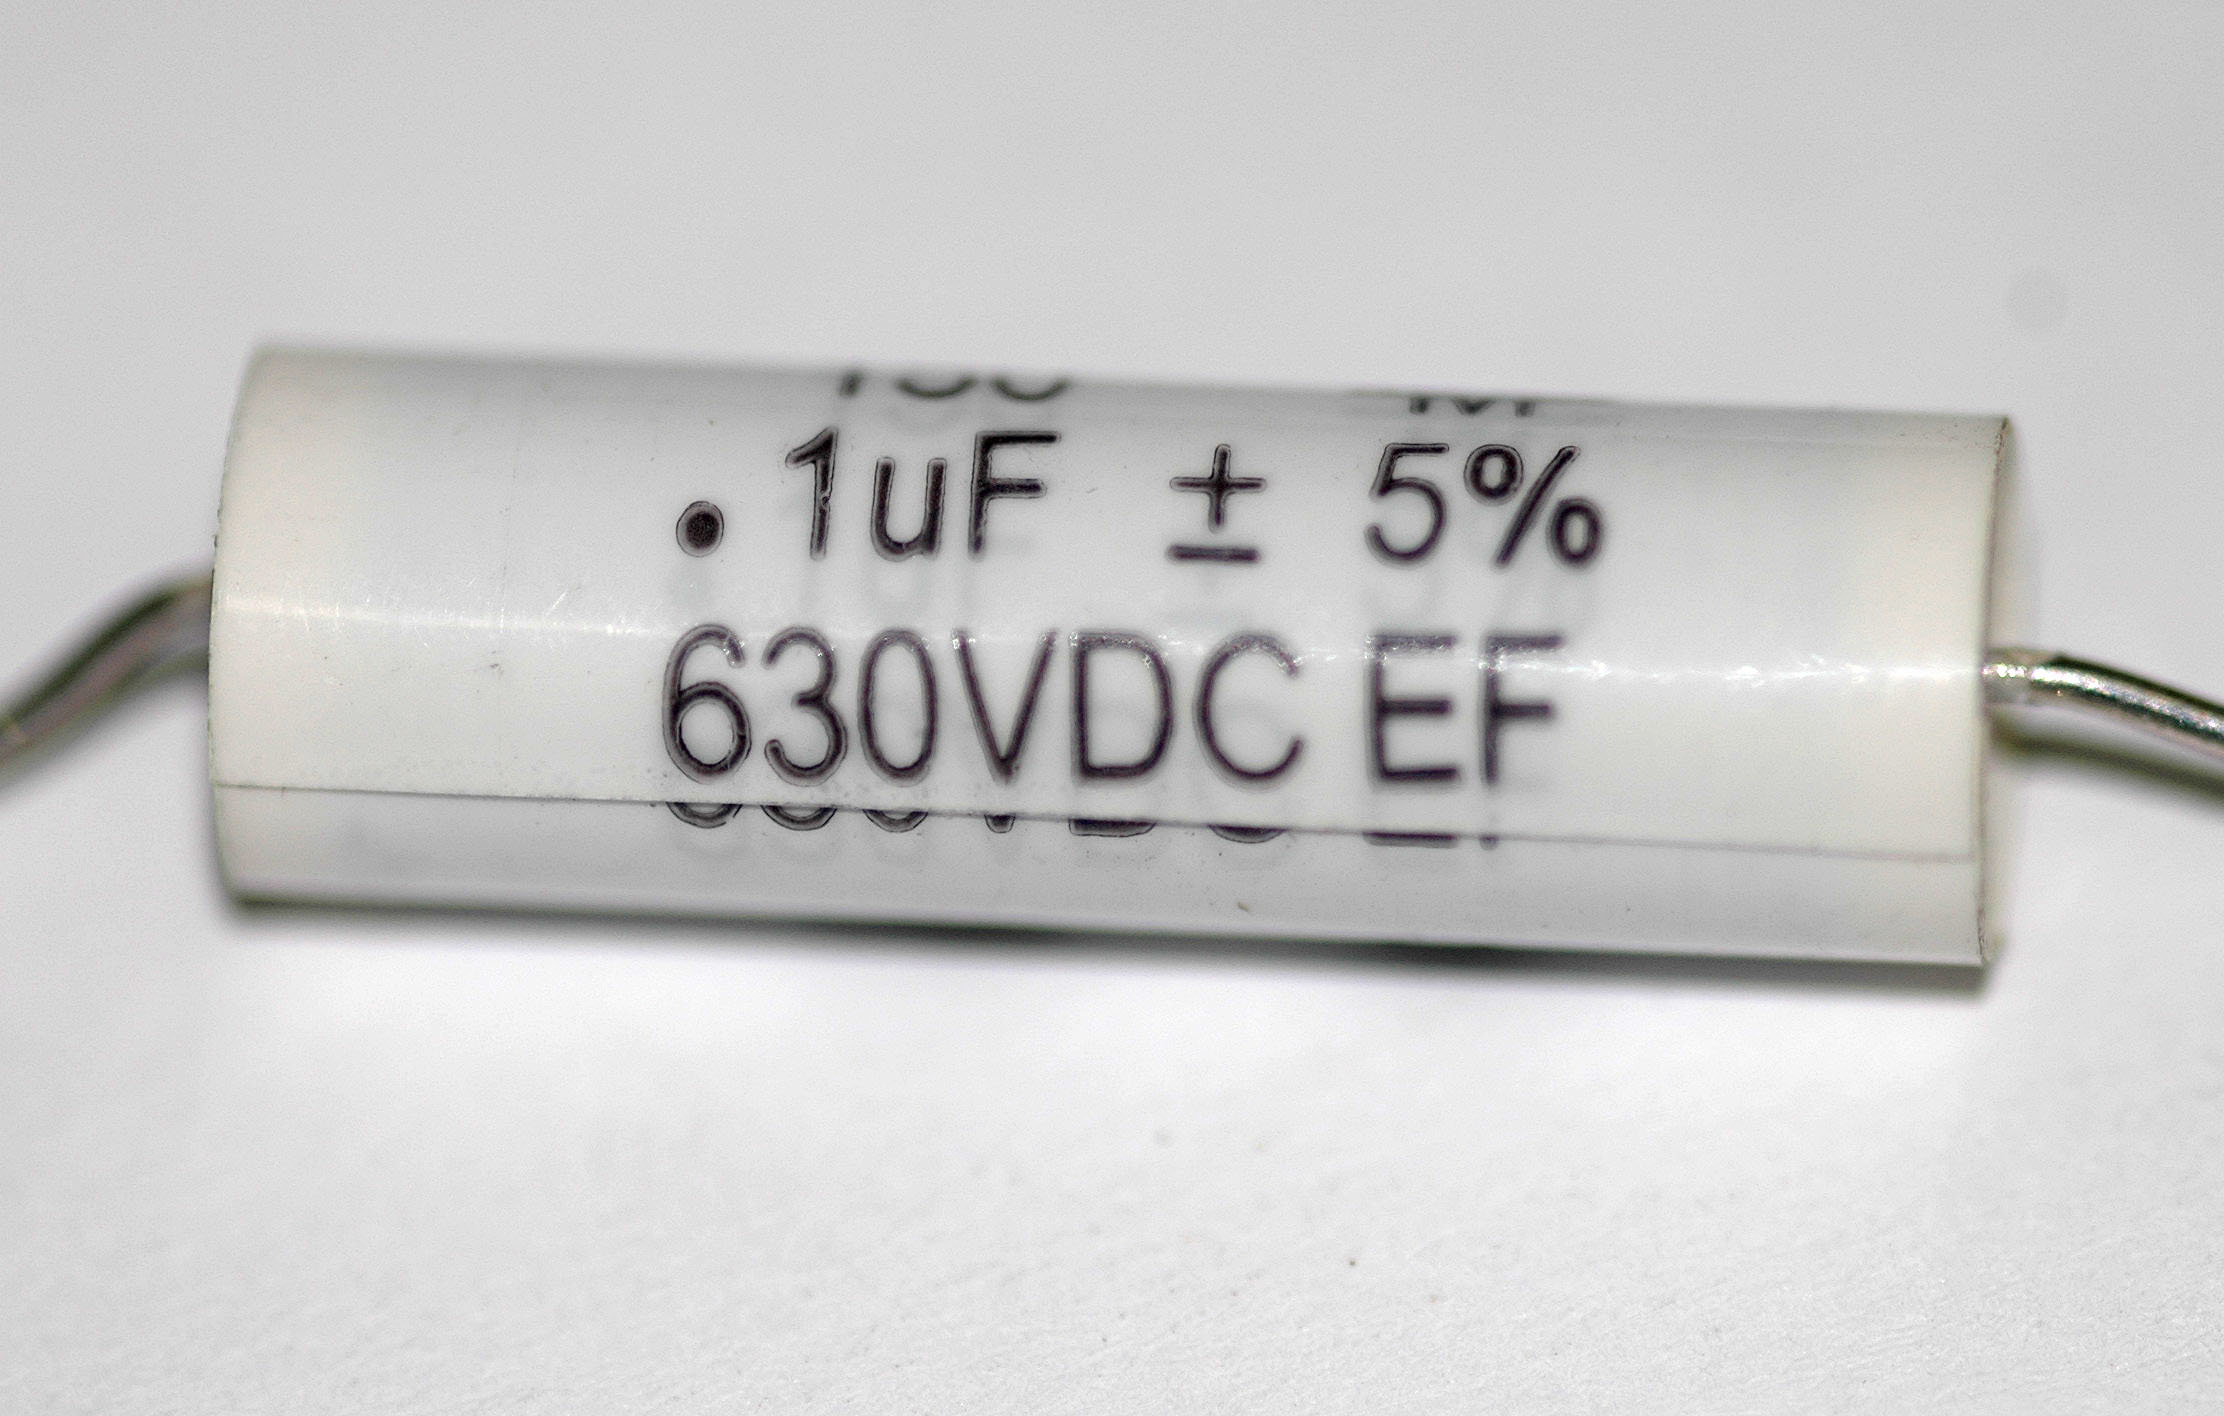 Capacitor Filecapacitor Schematicsvg Wikimedia Commons Signal Coupling